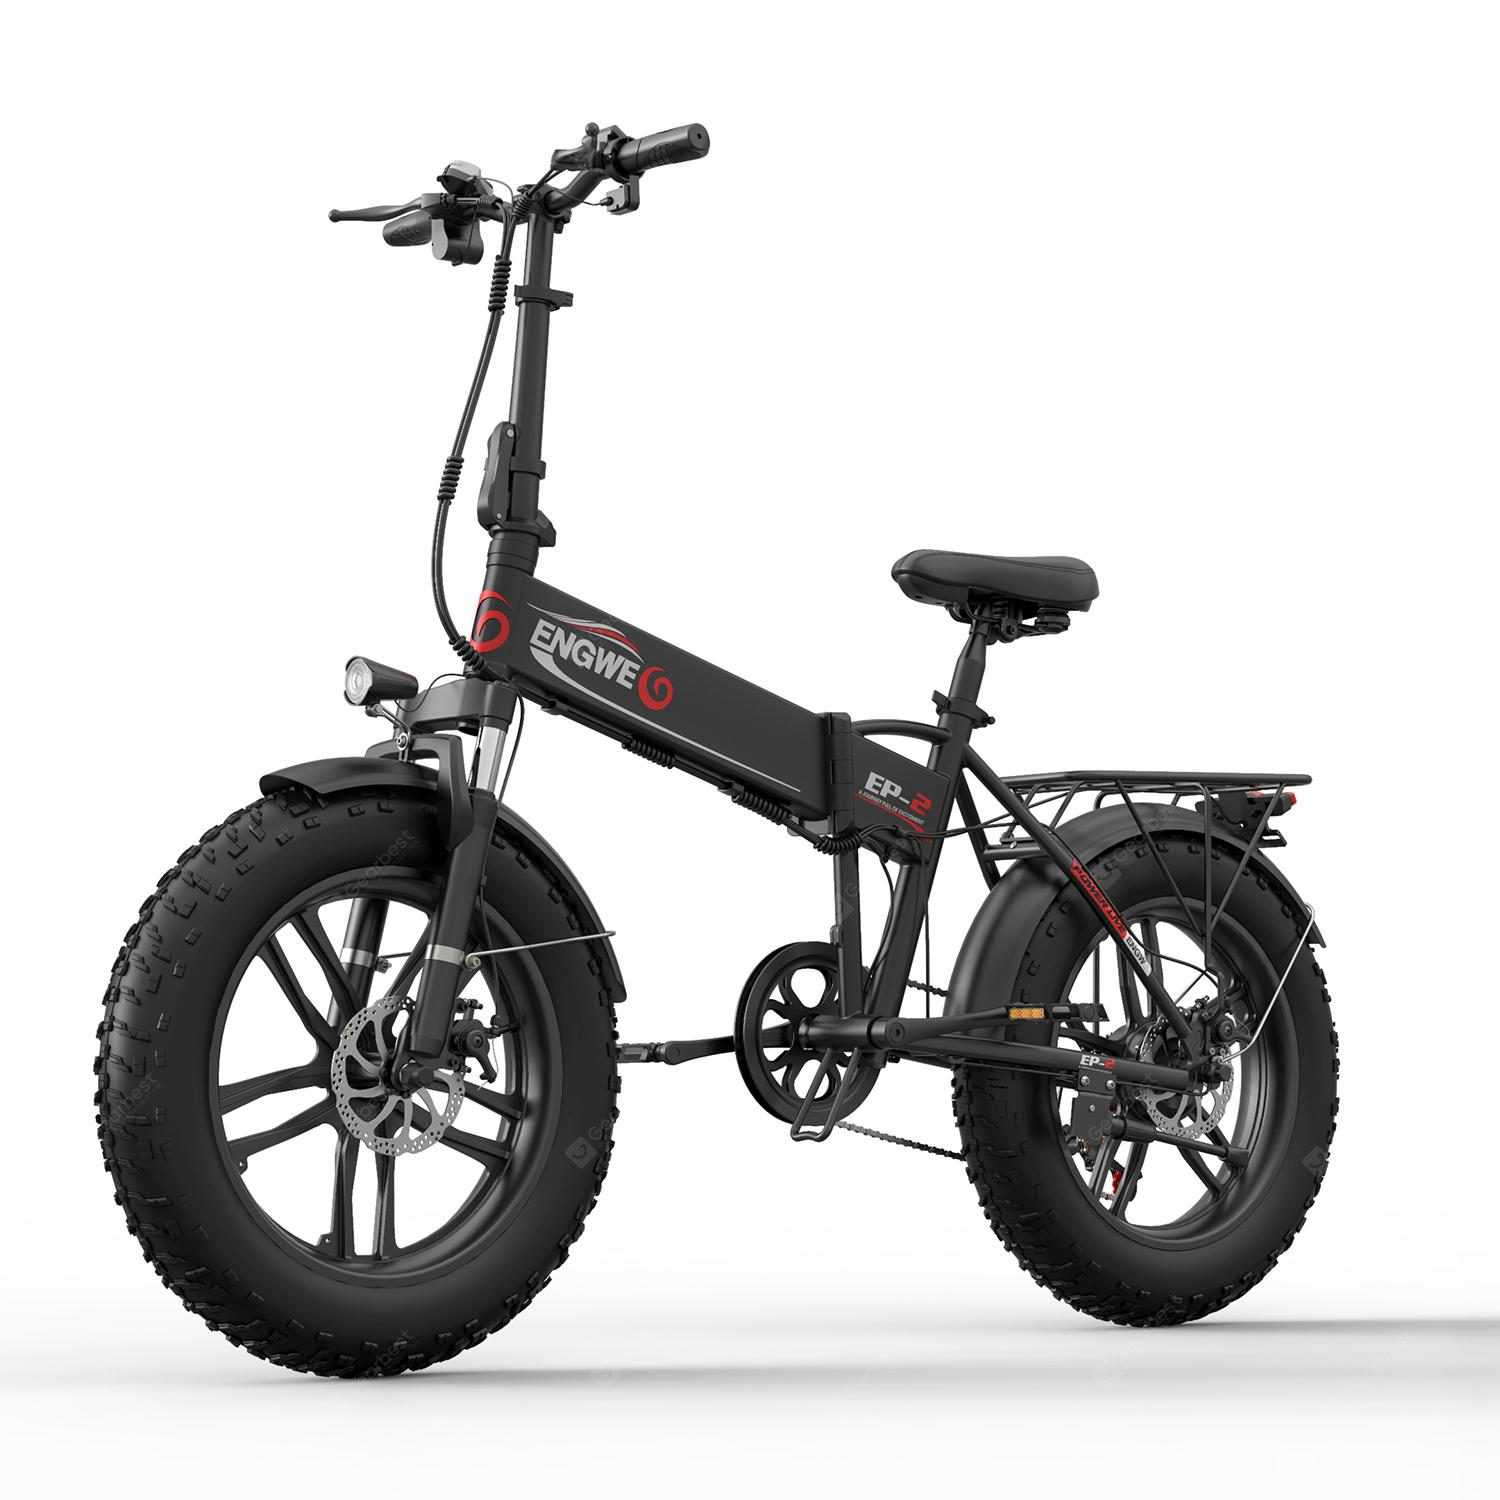 ENGWE EP-2 500W Folding Fat Tire Electric Bike with 48V 10Ah Lithium-ion Battery - Black China 7%commissions